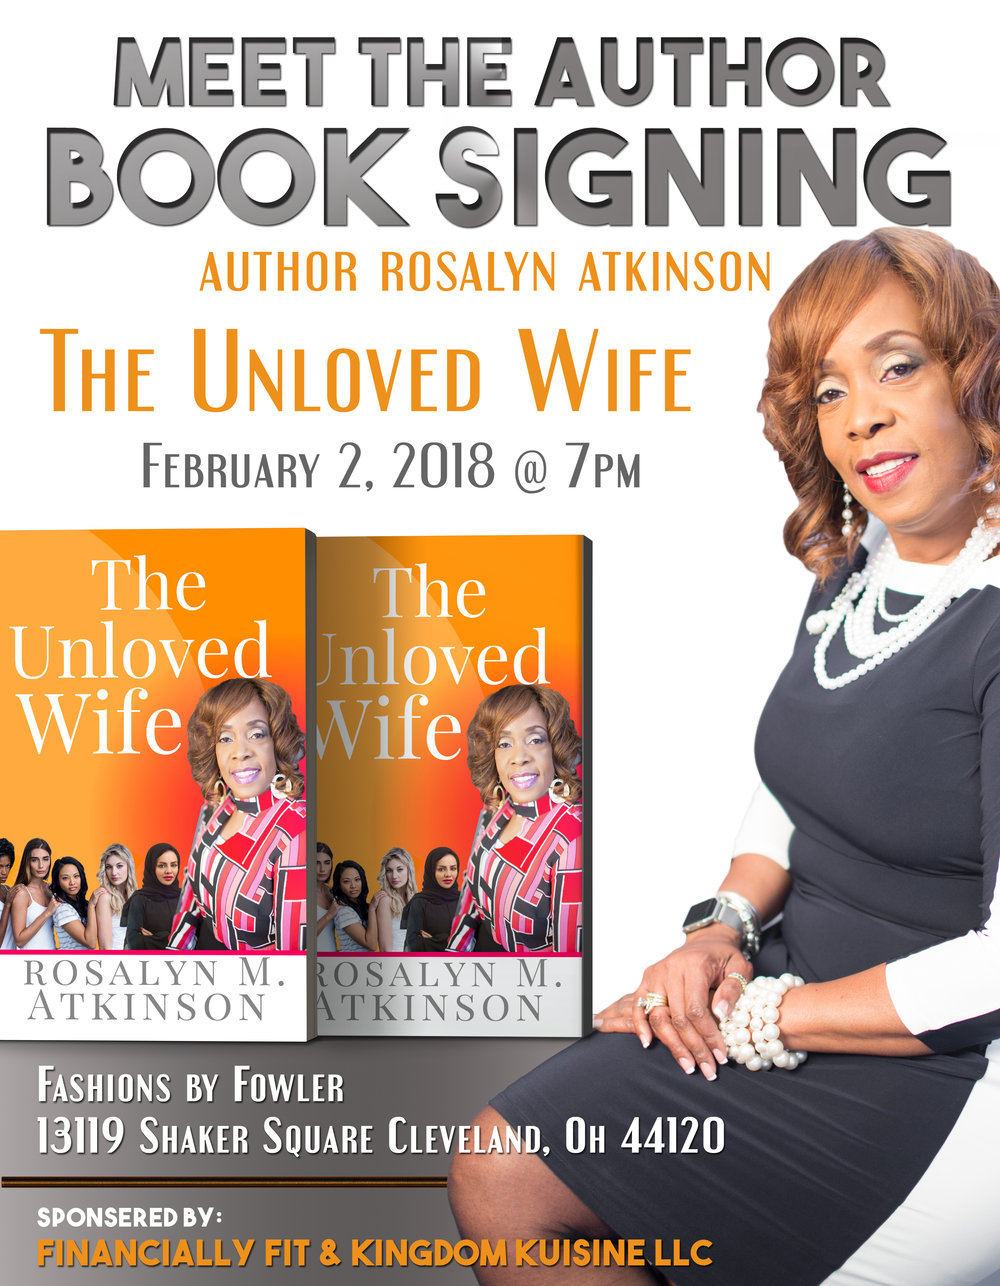 rosalyn flyer booksigning february.jpg